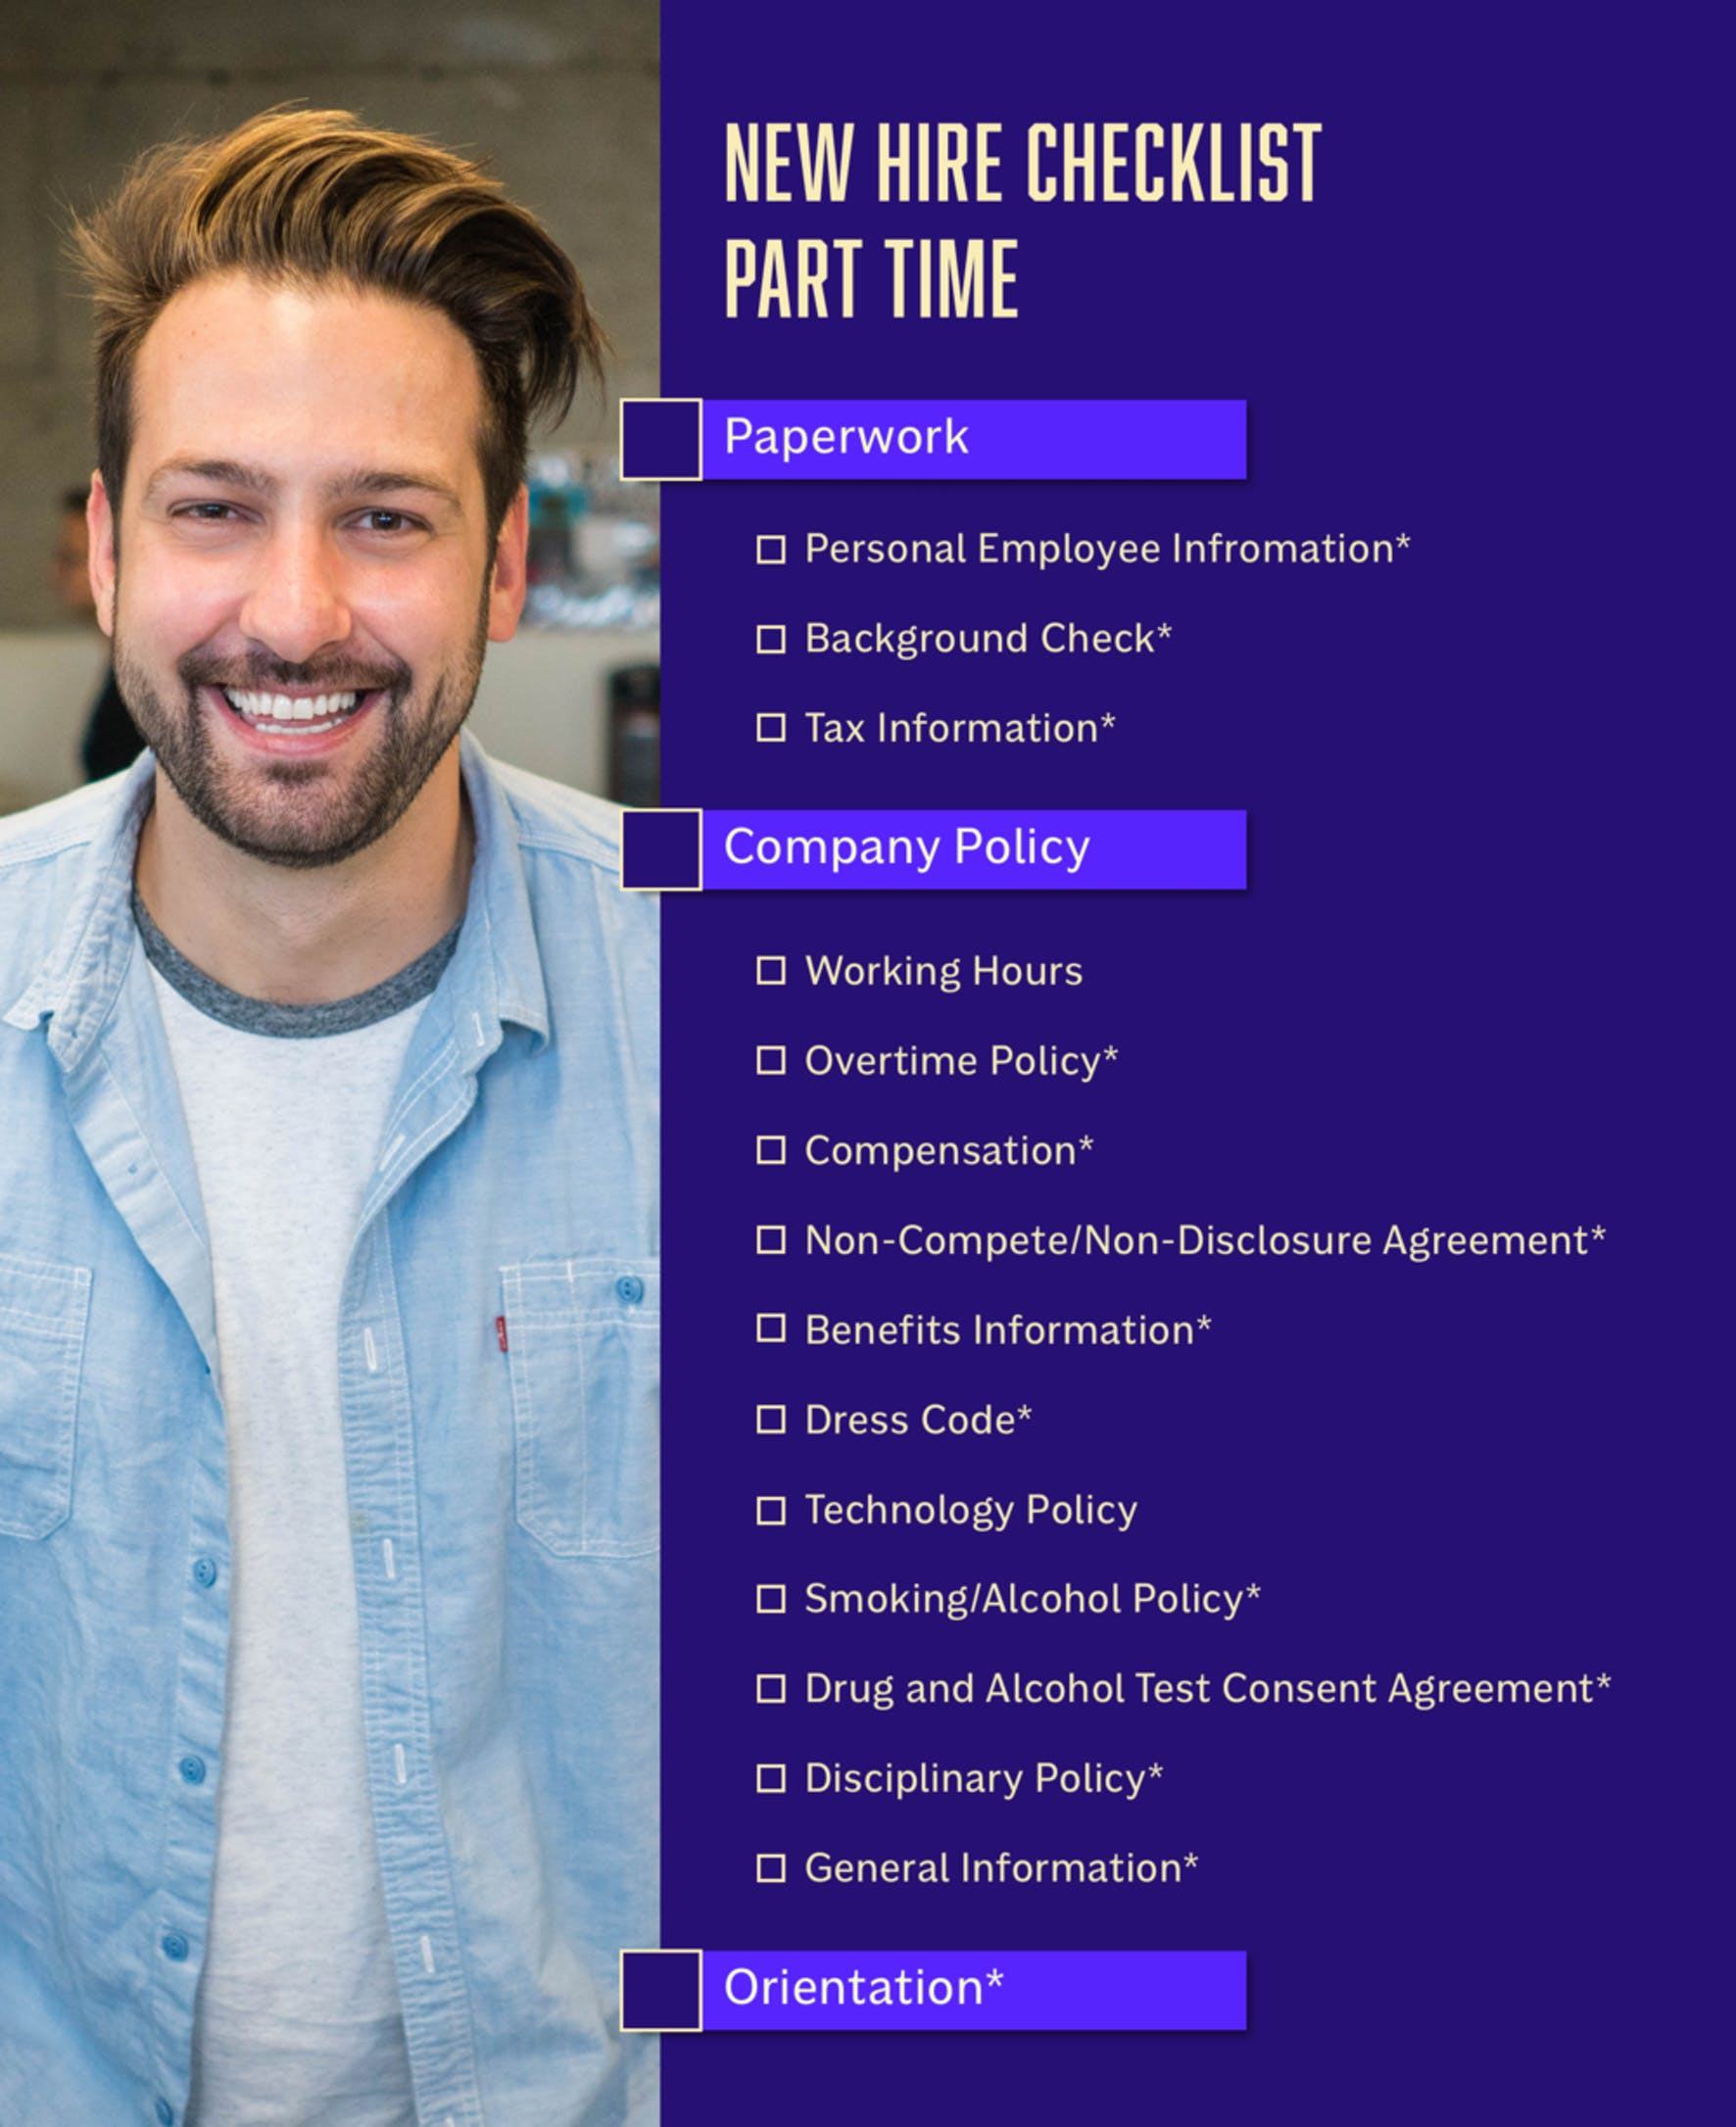 New Hire Checklist for Part Time Employees